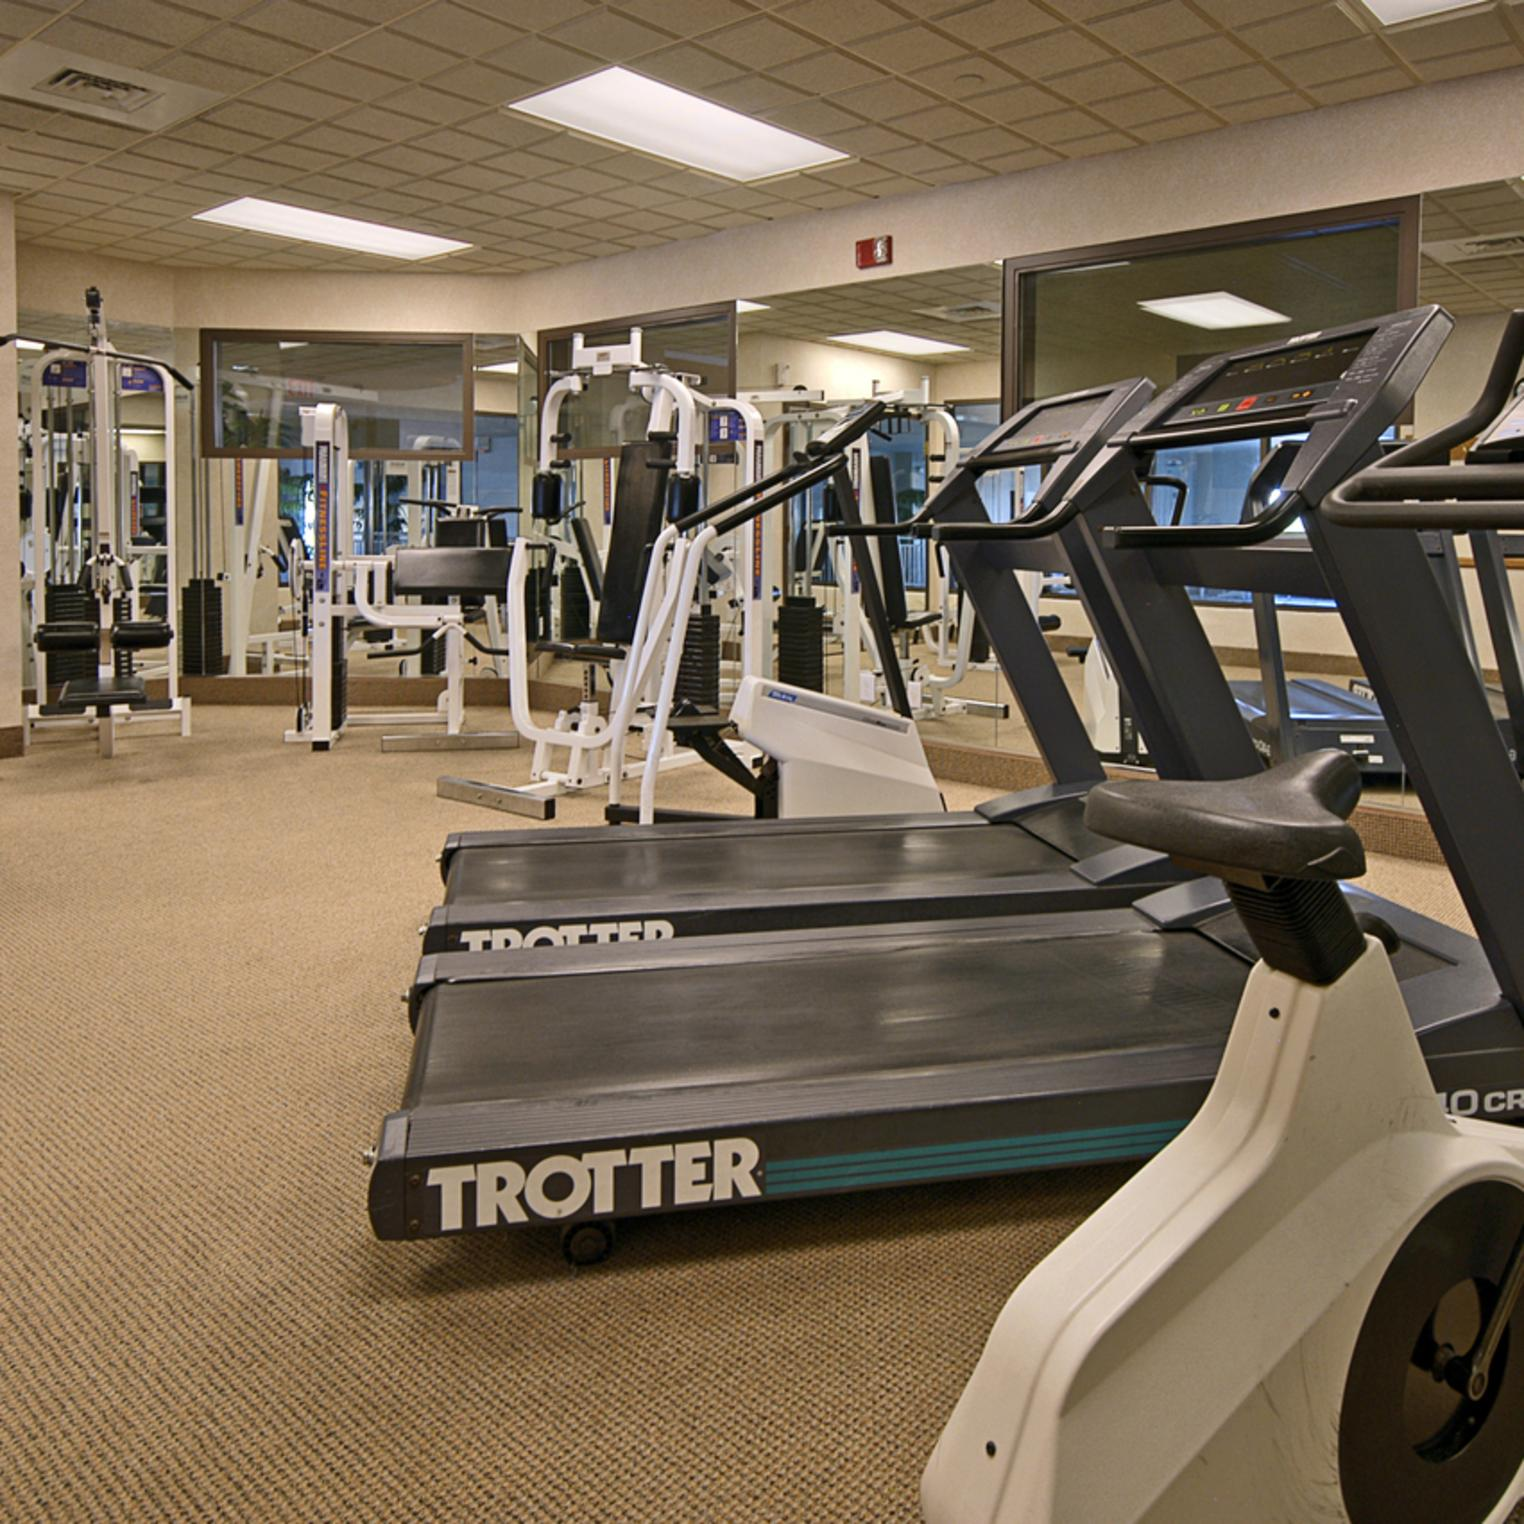 Stay on track with your exercise routine with our modern fitness center.